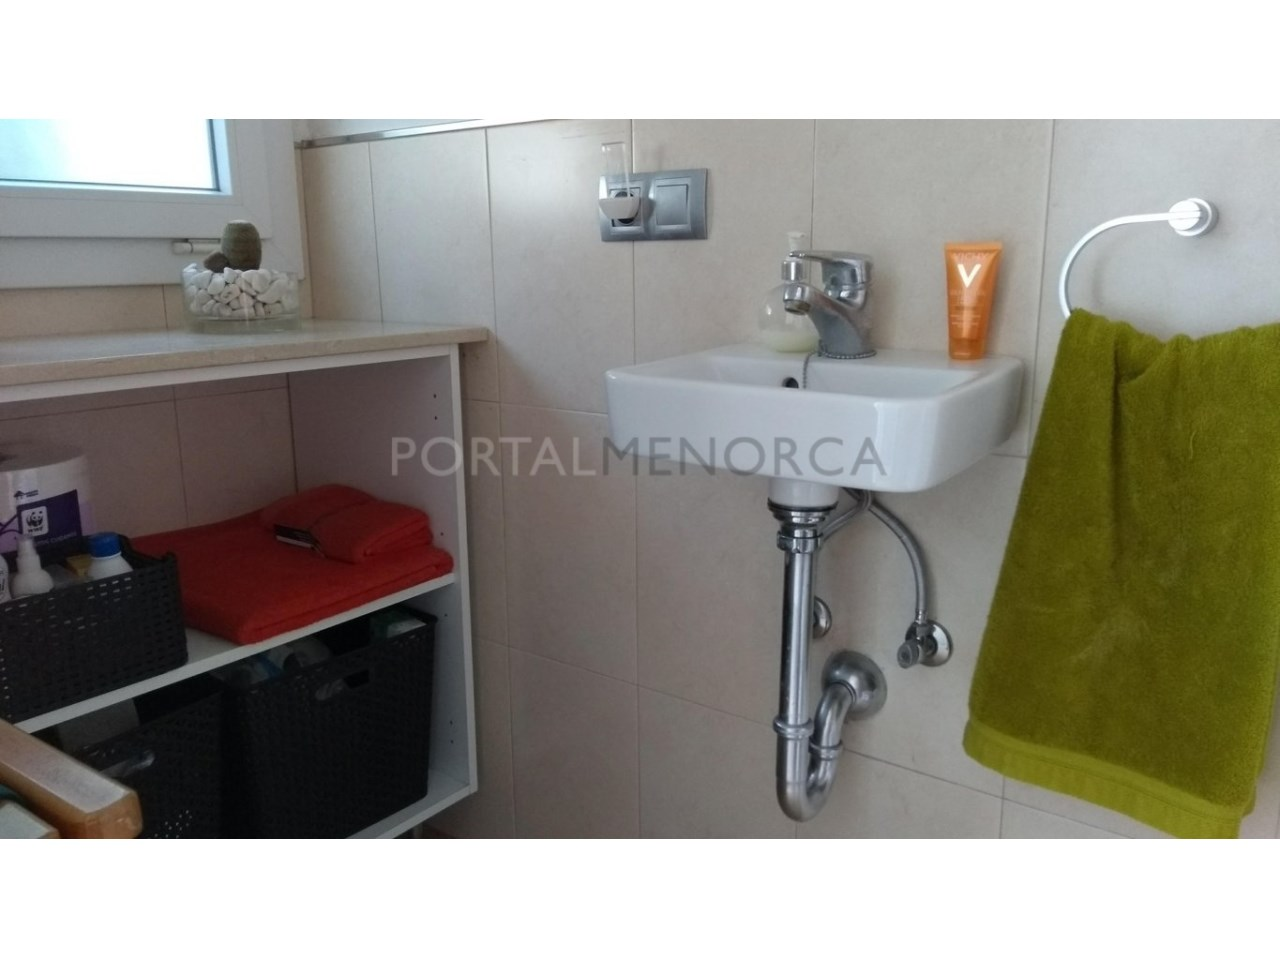 Charming villa with garage in Son Oleo for sale-cleanliness